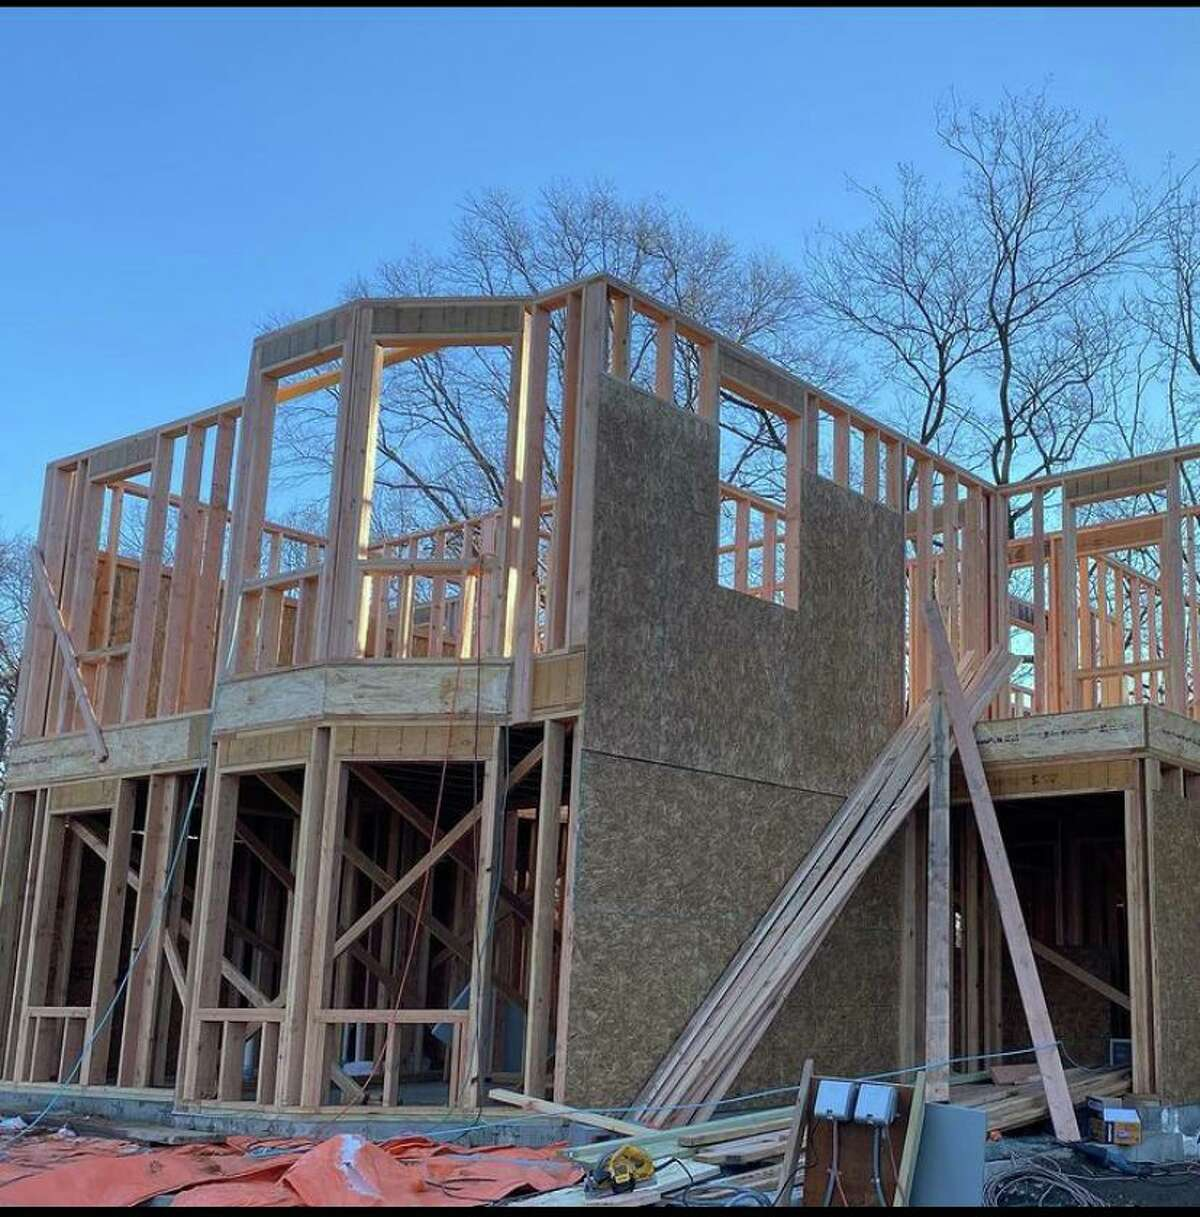 The beginnings of two buildings on East Lane currently being constructed to eventually be residences for developmentally disabled adults. Baywater Properties has partnered with Alibis to help create the project and make it an immersed part of the Darien community.